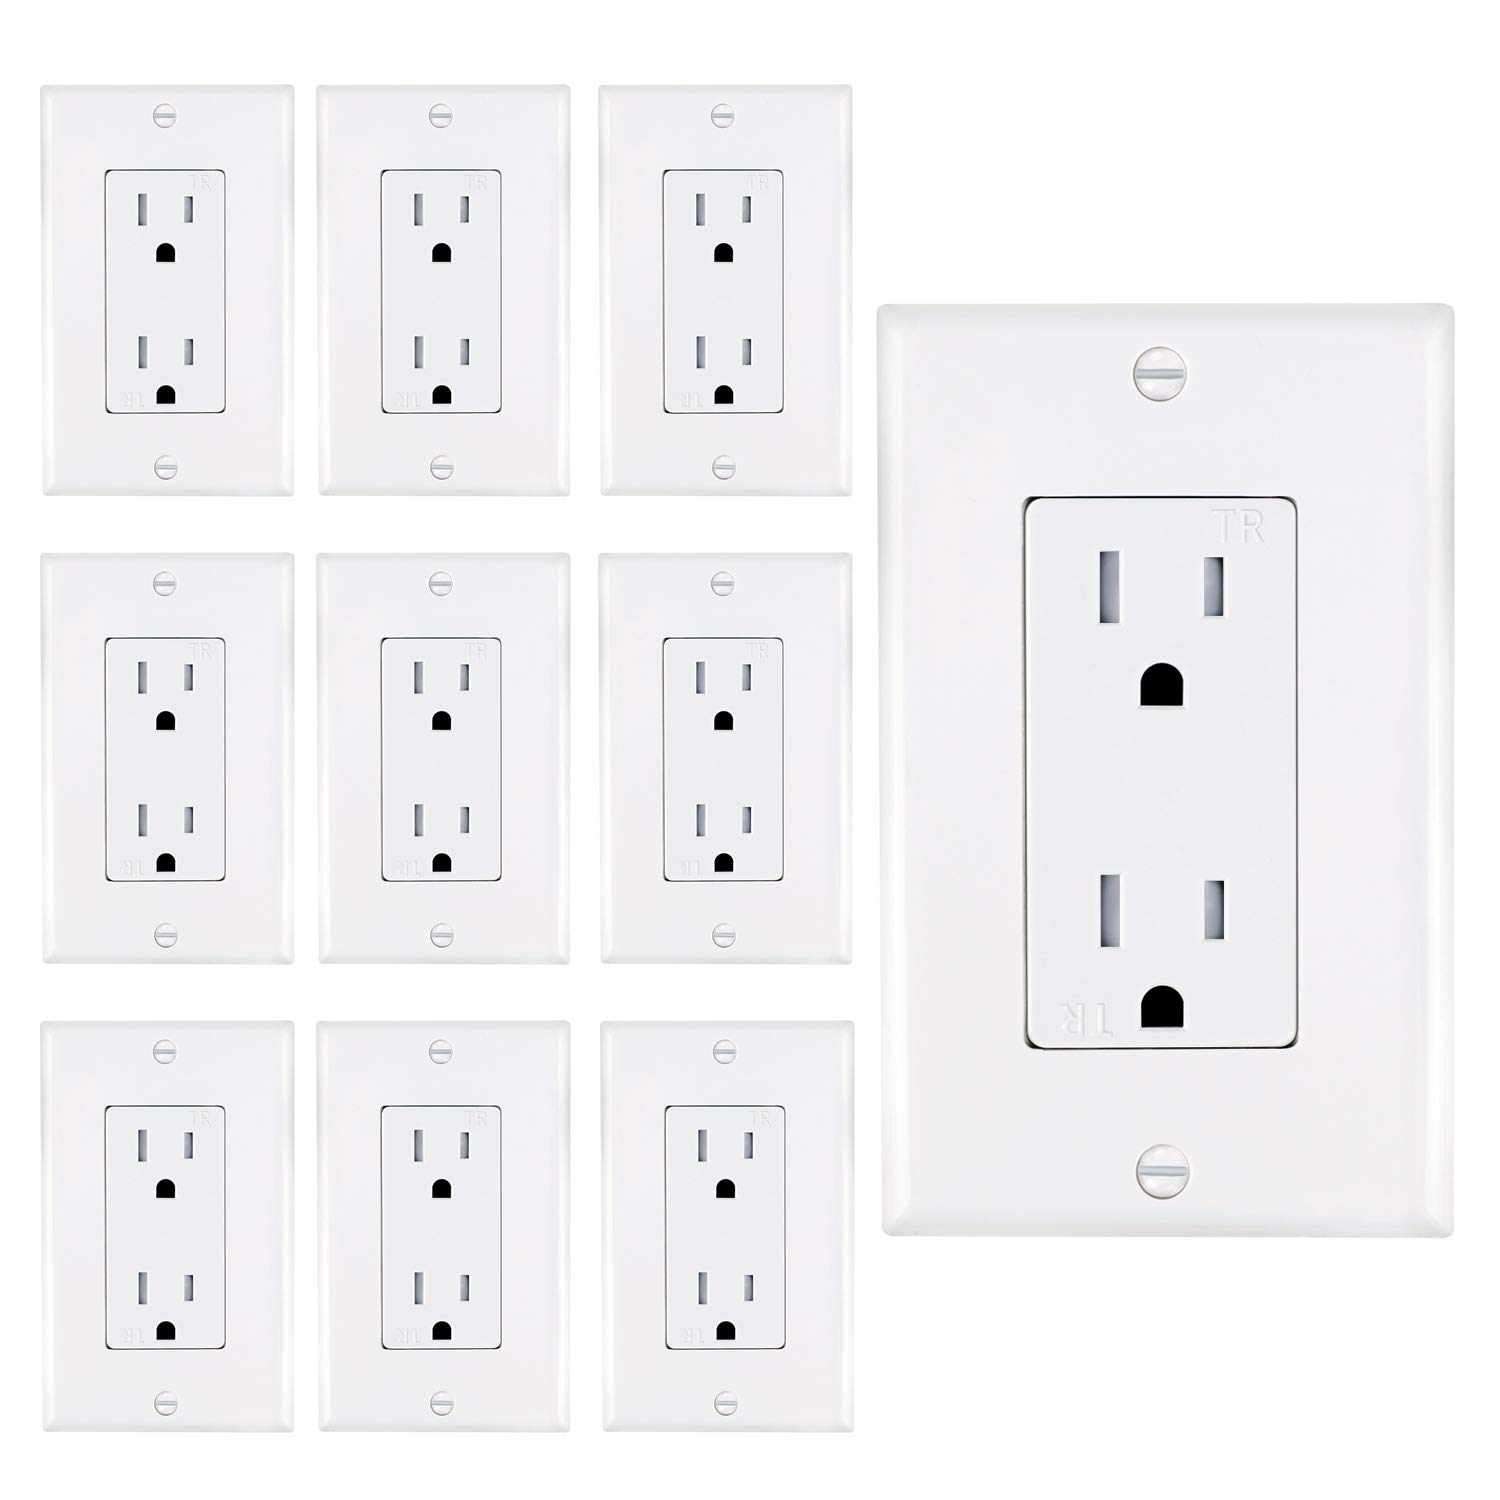 Decorative Electrical Wall Plates Part - 19: AbboTech 15A Tamper Resistant Duplex Receptacle Standard Wall Outlet  Decorative Electrical Outlet, Child Proof Safety,Wall Plates Included,  White, ...